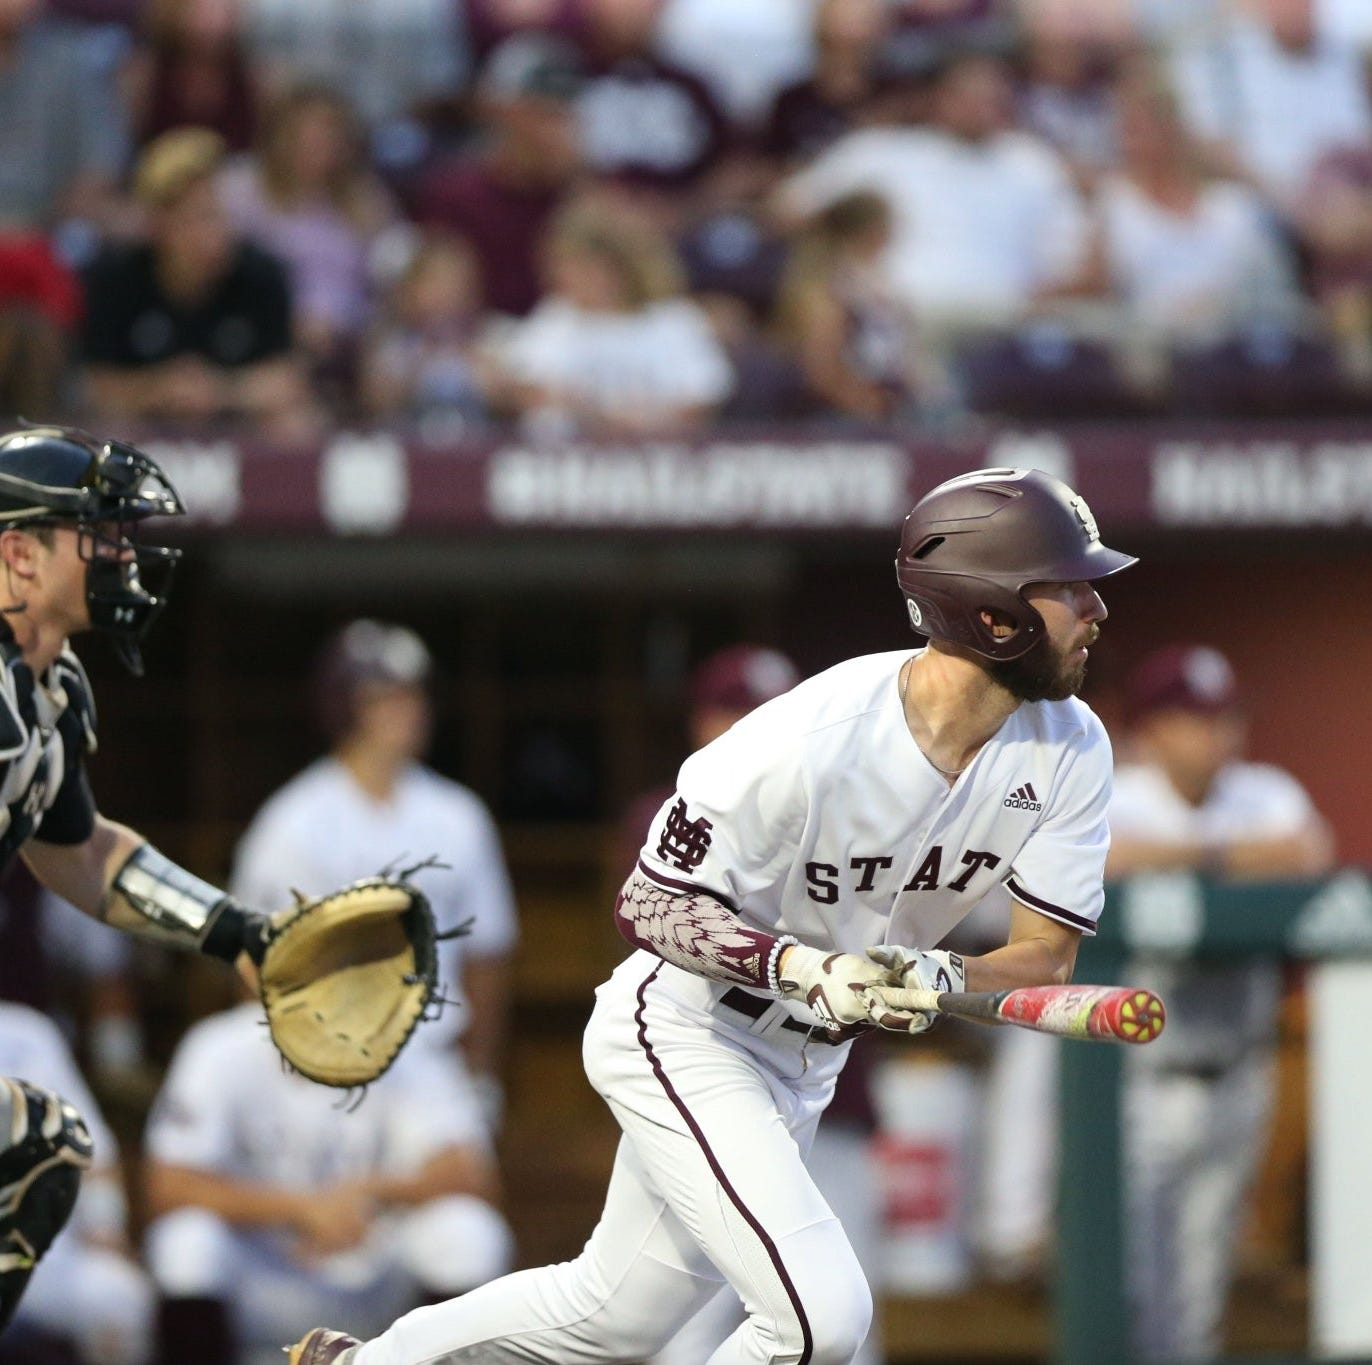 Mississippi State clinches SEC series finale with another rout of South Carolina